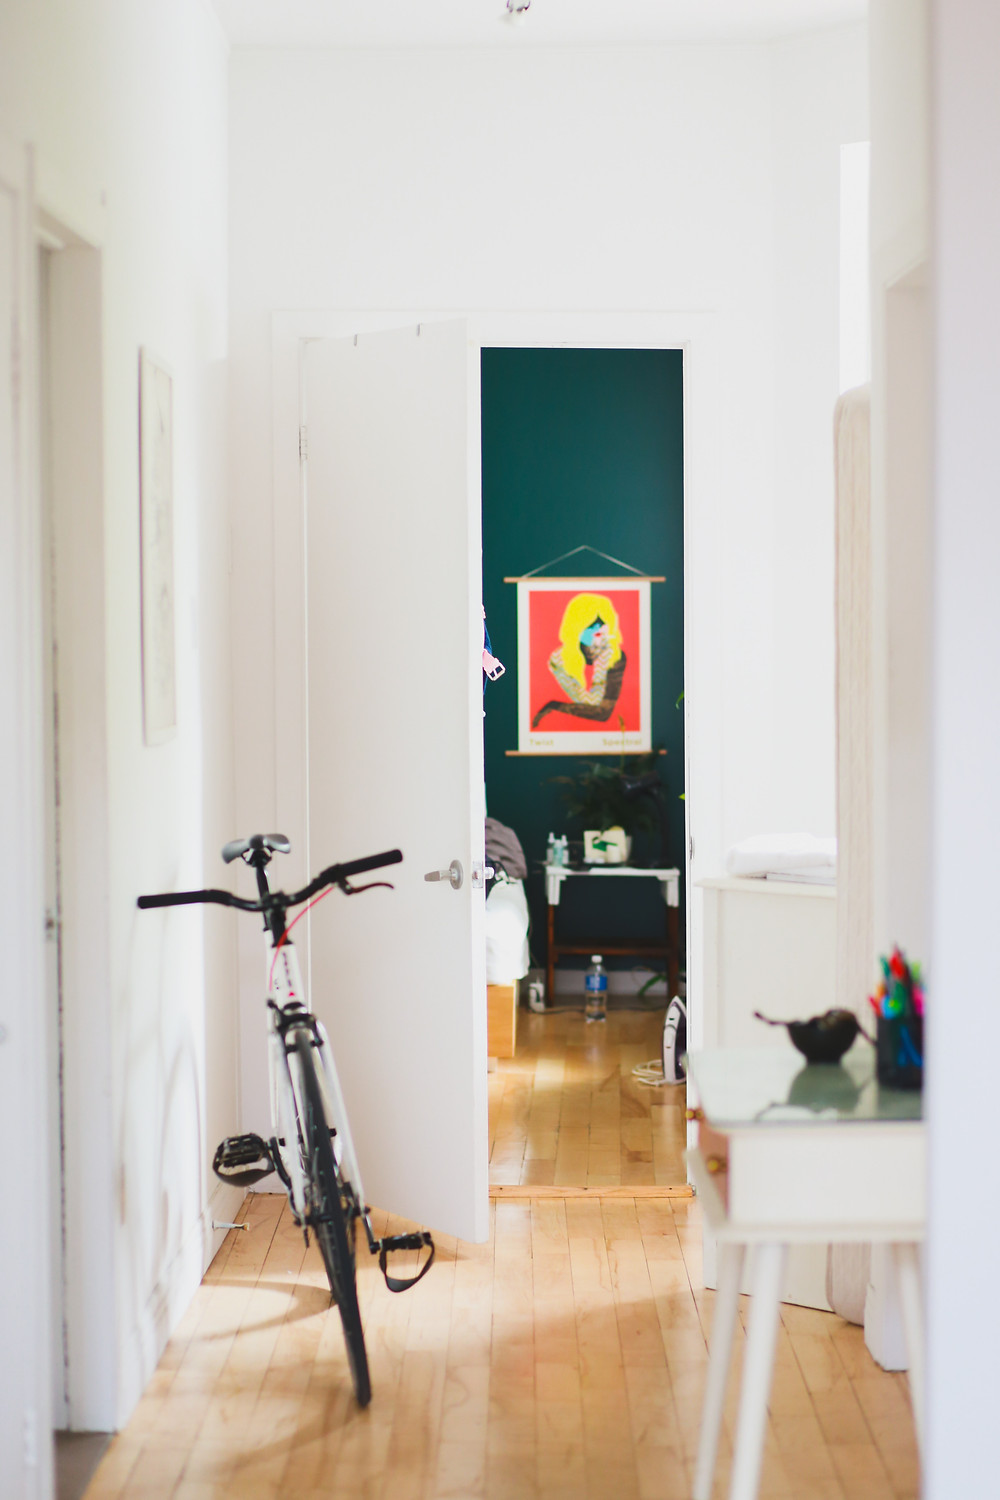 A bright entry hallway with which walls and wooden floors. A deep forest green wall is poking through one of the doorways with a vibrant, pop-art style art piece. There is a black and white bicycle leaning on the wall and a small hall table which has a few decorative pieces placed on top.